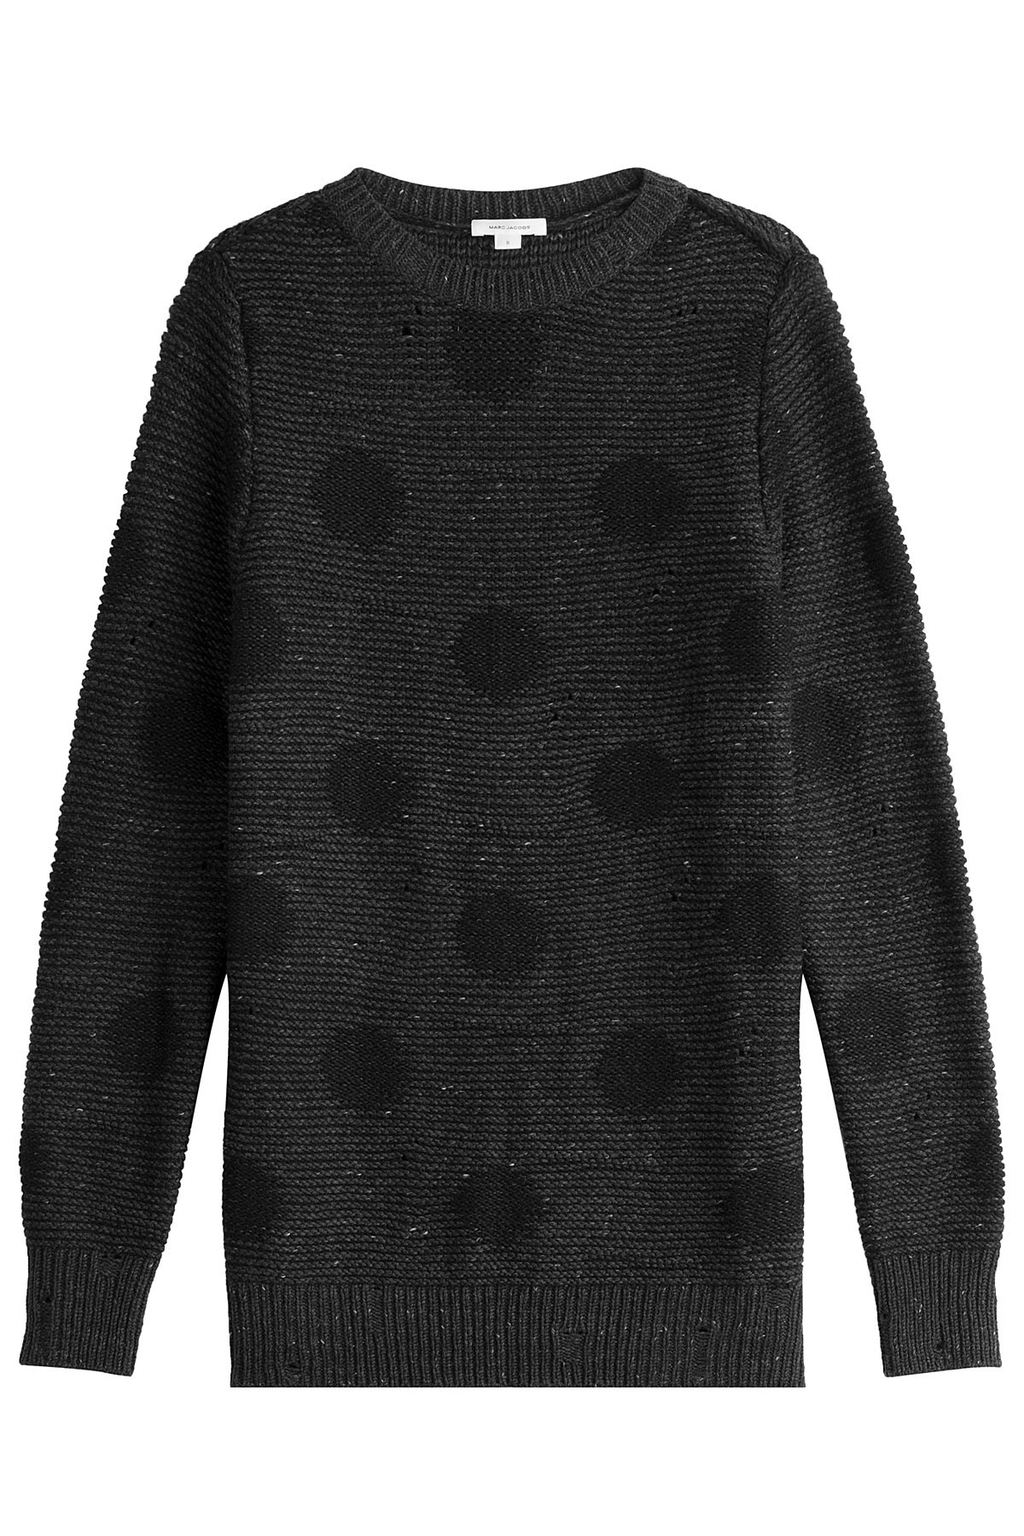 Oversize Printed Wool Pullover - length: below the bottom; pattern: polka dot; style: standard; predominant colour: charcoal; secondary colour: black; occasions: casual, creative work; fibres: wool - mix; fit: loose; neckline: crew; sleeve length: long sleeve; sleeve style: standard; texture group: knits/crochet; pattern type: knitted - other; pattern size: standard; season: a/w 2016; wardrobe: highlight